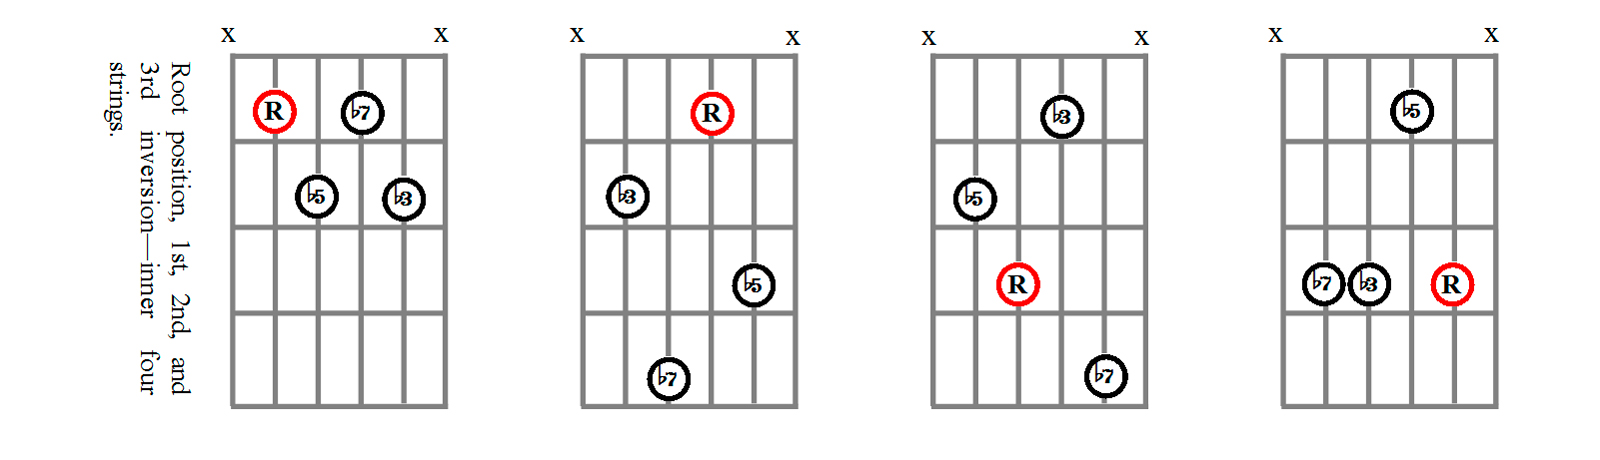 Minor Seventh Flat-Five Chord Shapes Using Strings 5, 4, 3,  and 2